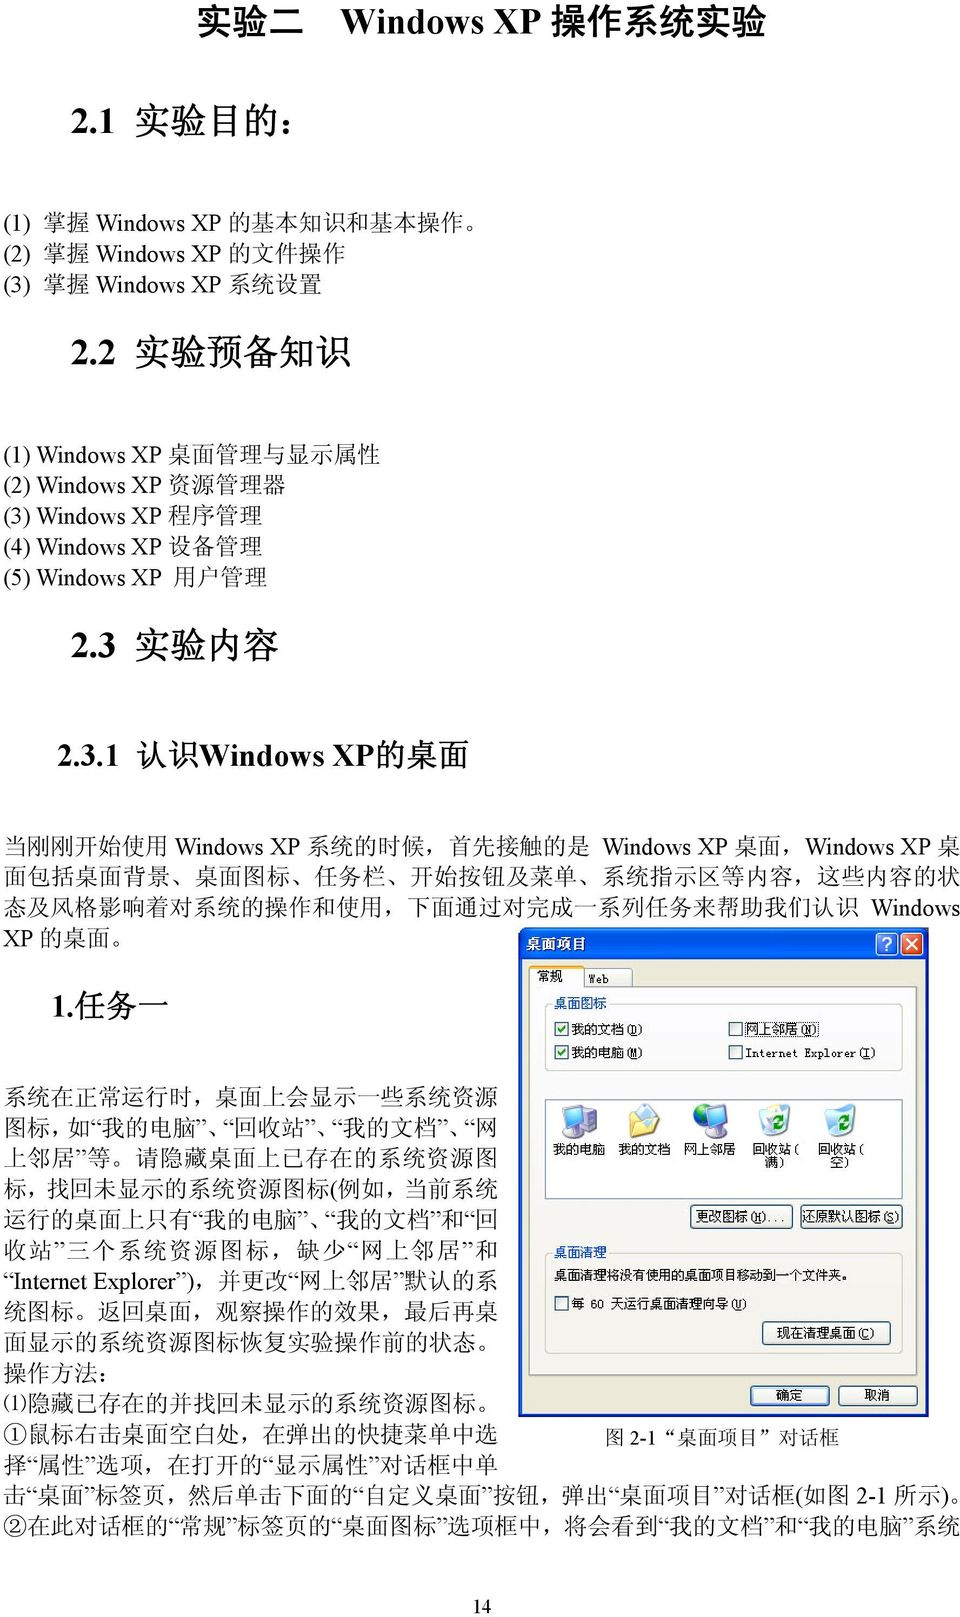 Windows XP 程 序 管 理 (4) Windows XP 设 备 管 理 (5) Windows XP 用 户 管 理 2.3